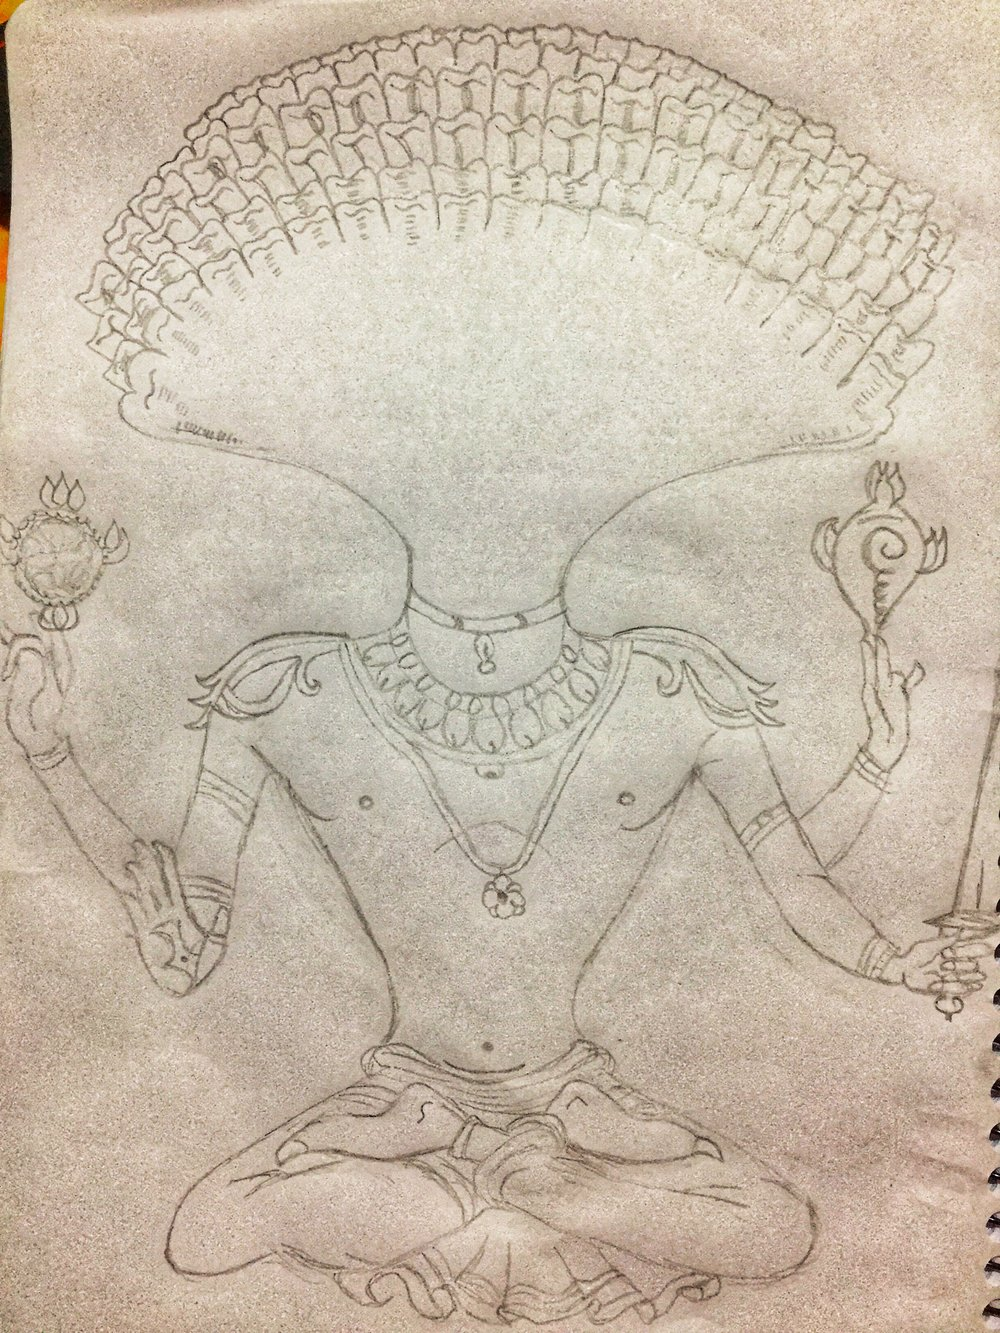 A drawing by Prerna of Sage Patanjali from a book cover of the Yoga Sutra-s that was given to us by our beloved teacher.